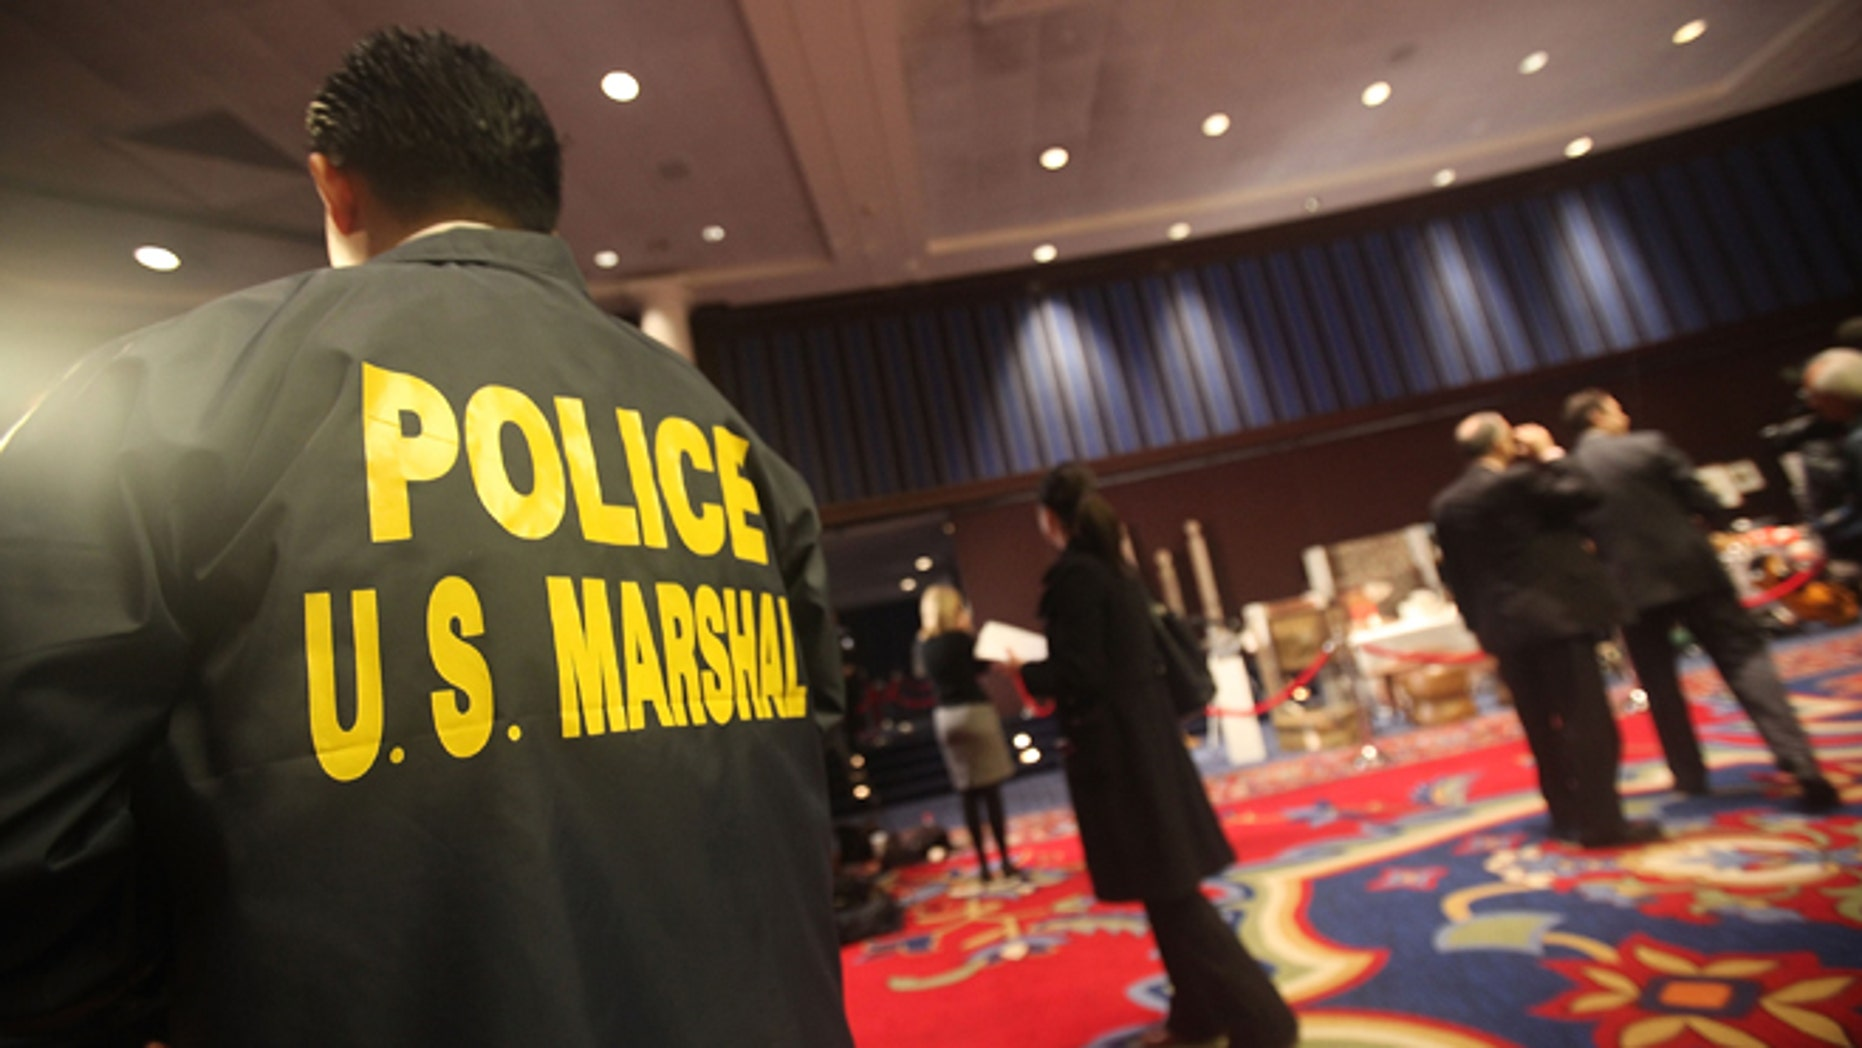 NEW YORK - NOVEMBER 13:  A U.S. Marshal looks on during a press preview of a U.S. Marshals Service auction of personal property seized from Bernard and Ruth Madoff November 13, 2009 in New York City. The property includes jewelry, furs, artwork and other items forfeited in connection with the criminal prosecution of Bernard Madoff's Ponzi scheme.  (Photo by Mario Tama/Getty Images)